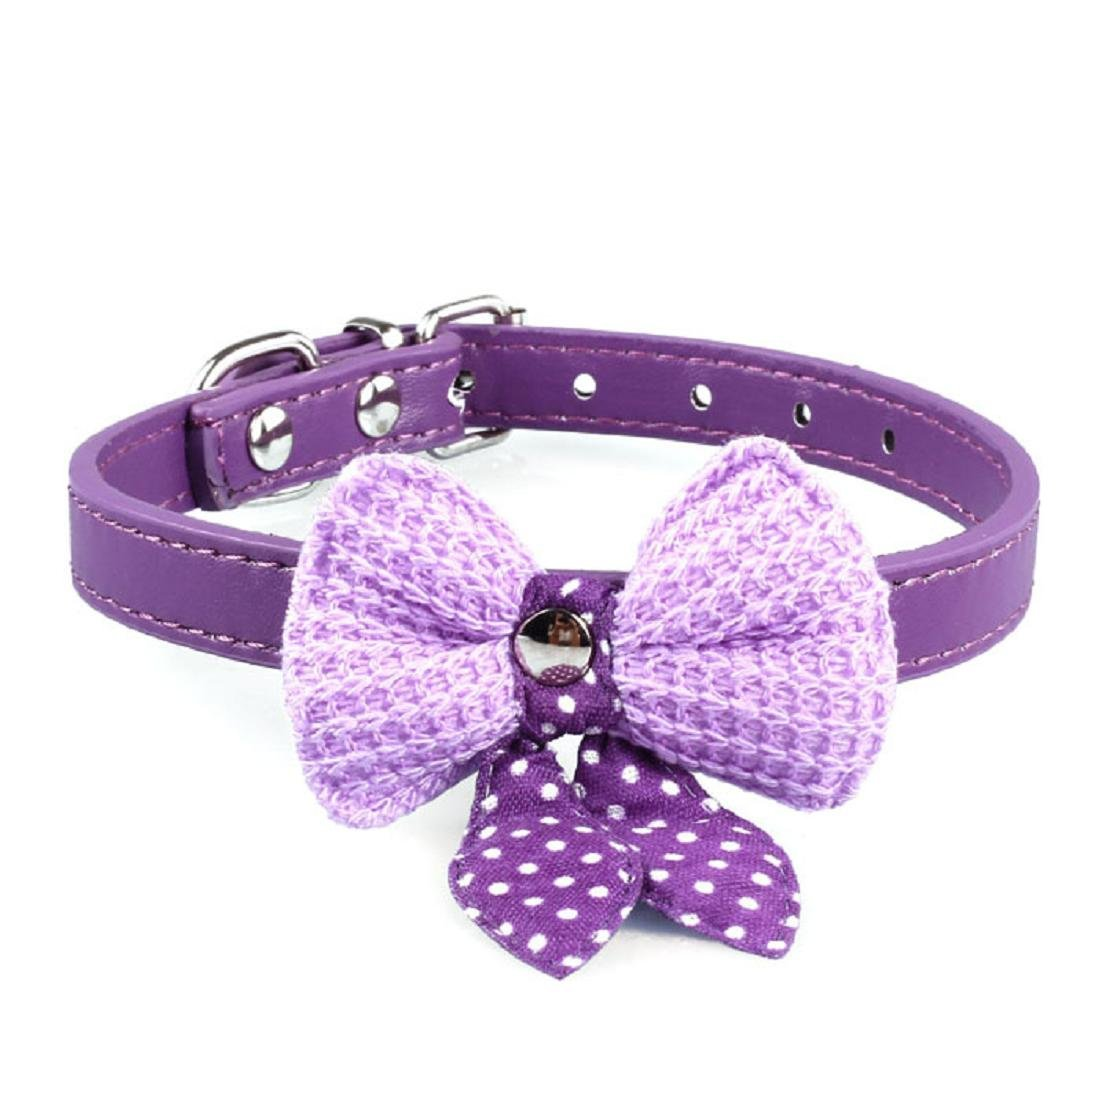 Kinghard Knit Bowknot Adjustable Leather Puppy Pet Collars (Purple)